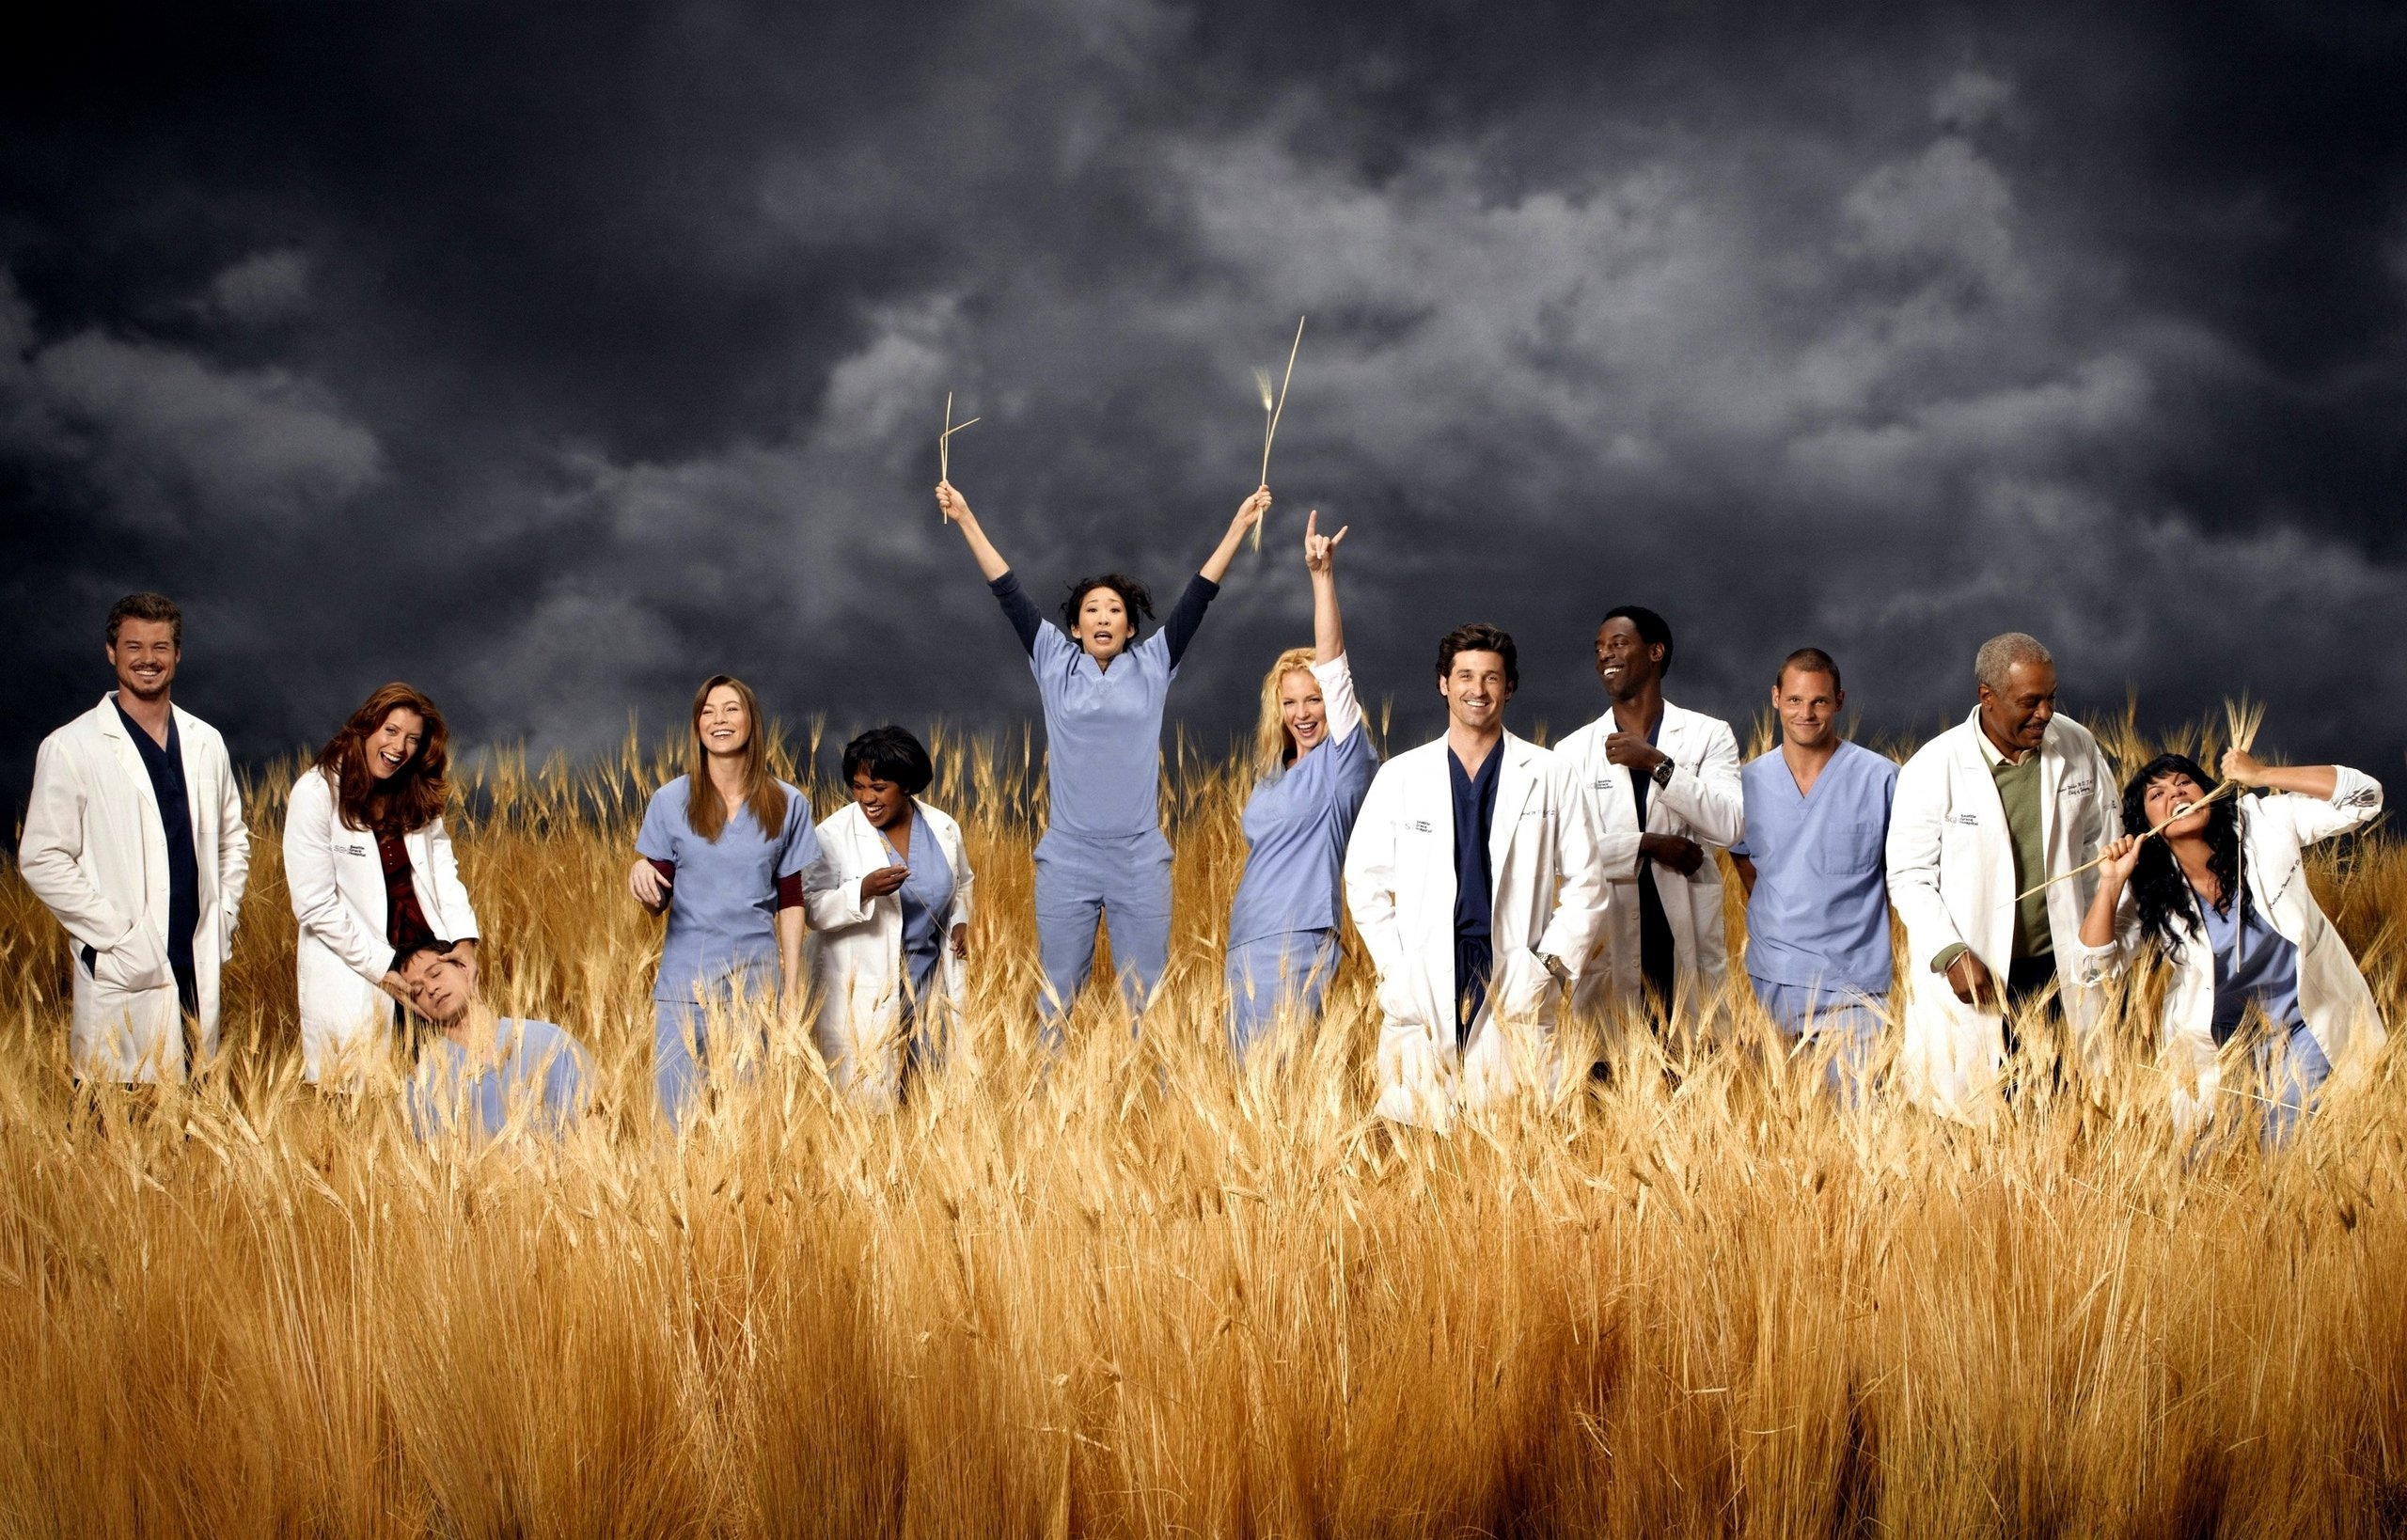 Greys Anatomy Wallpaper 19   2560 X 1638 stmednet 2560x1638